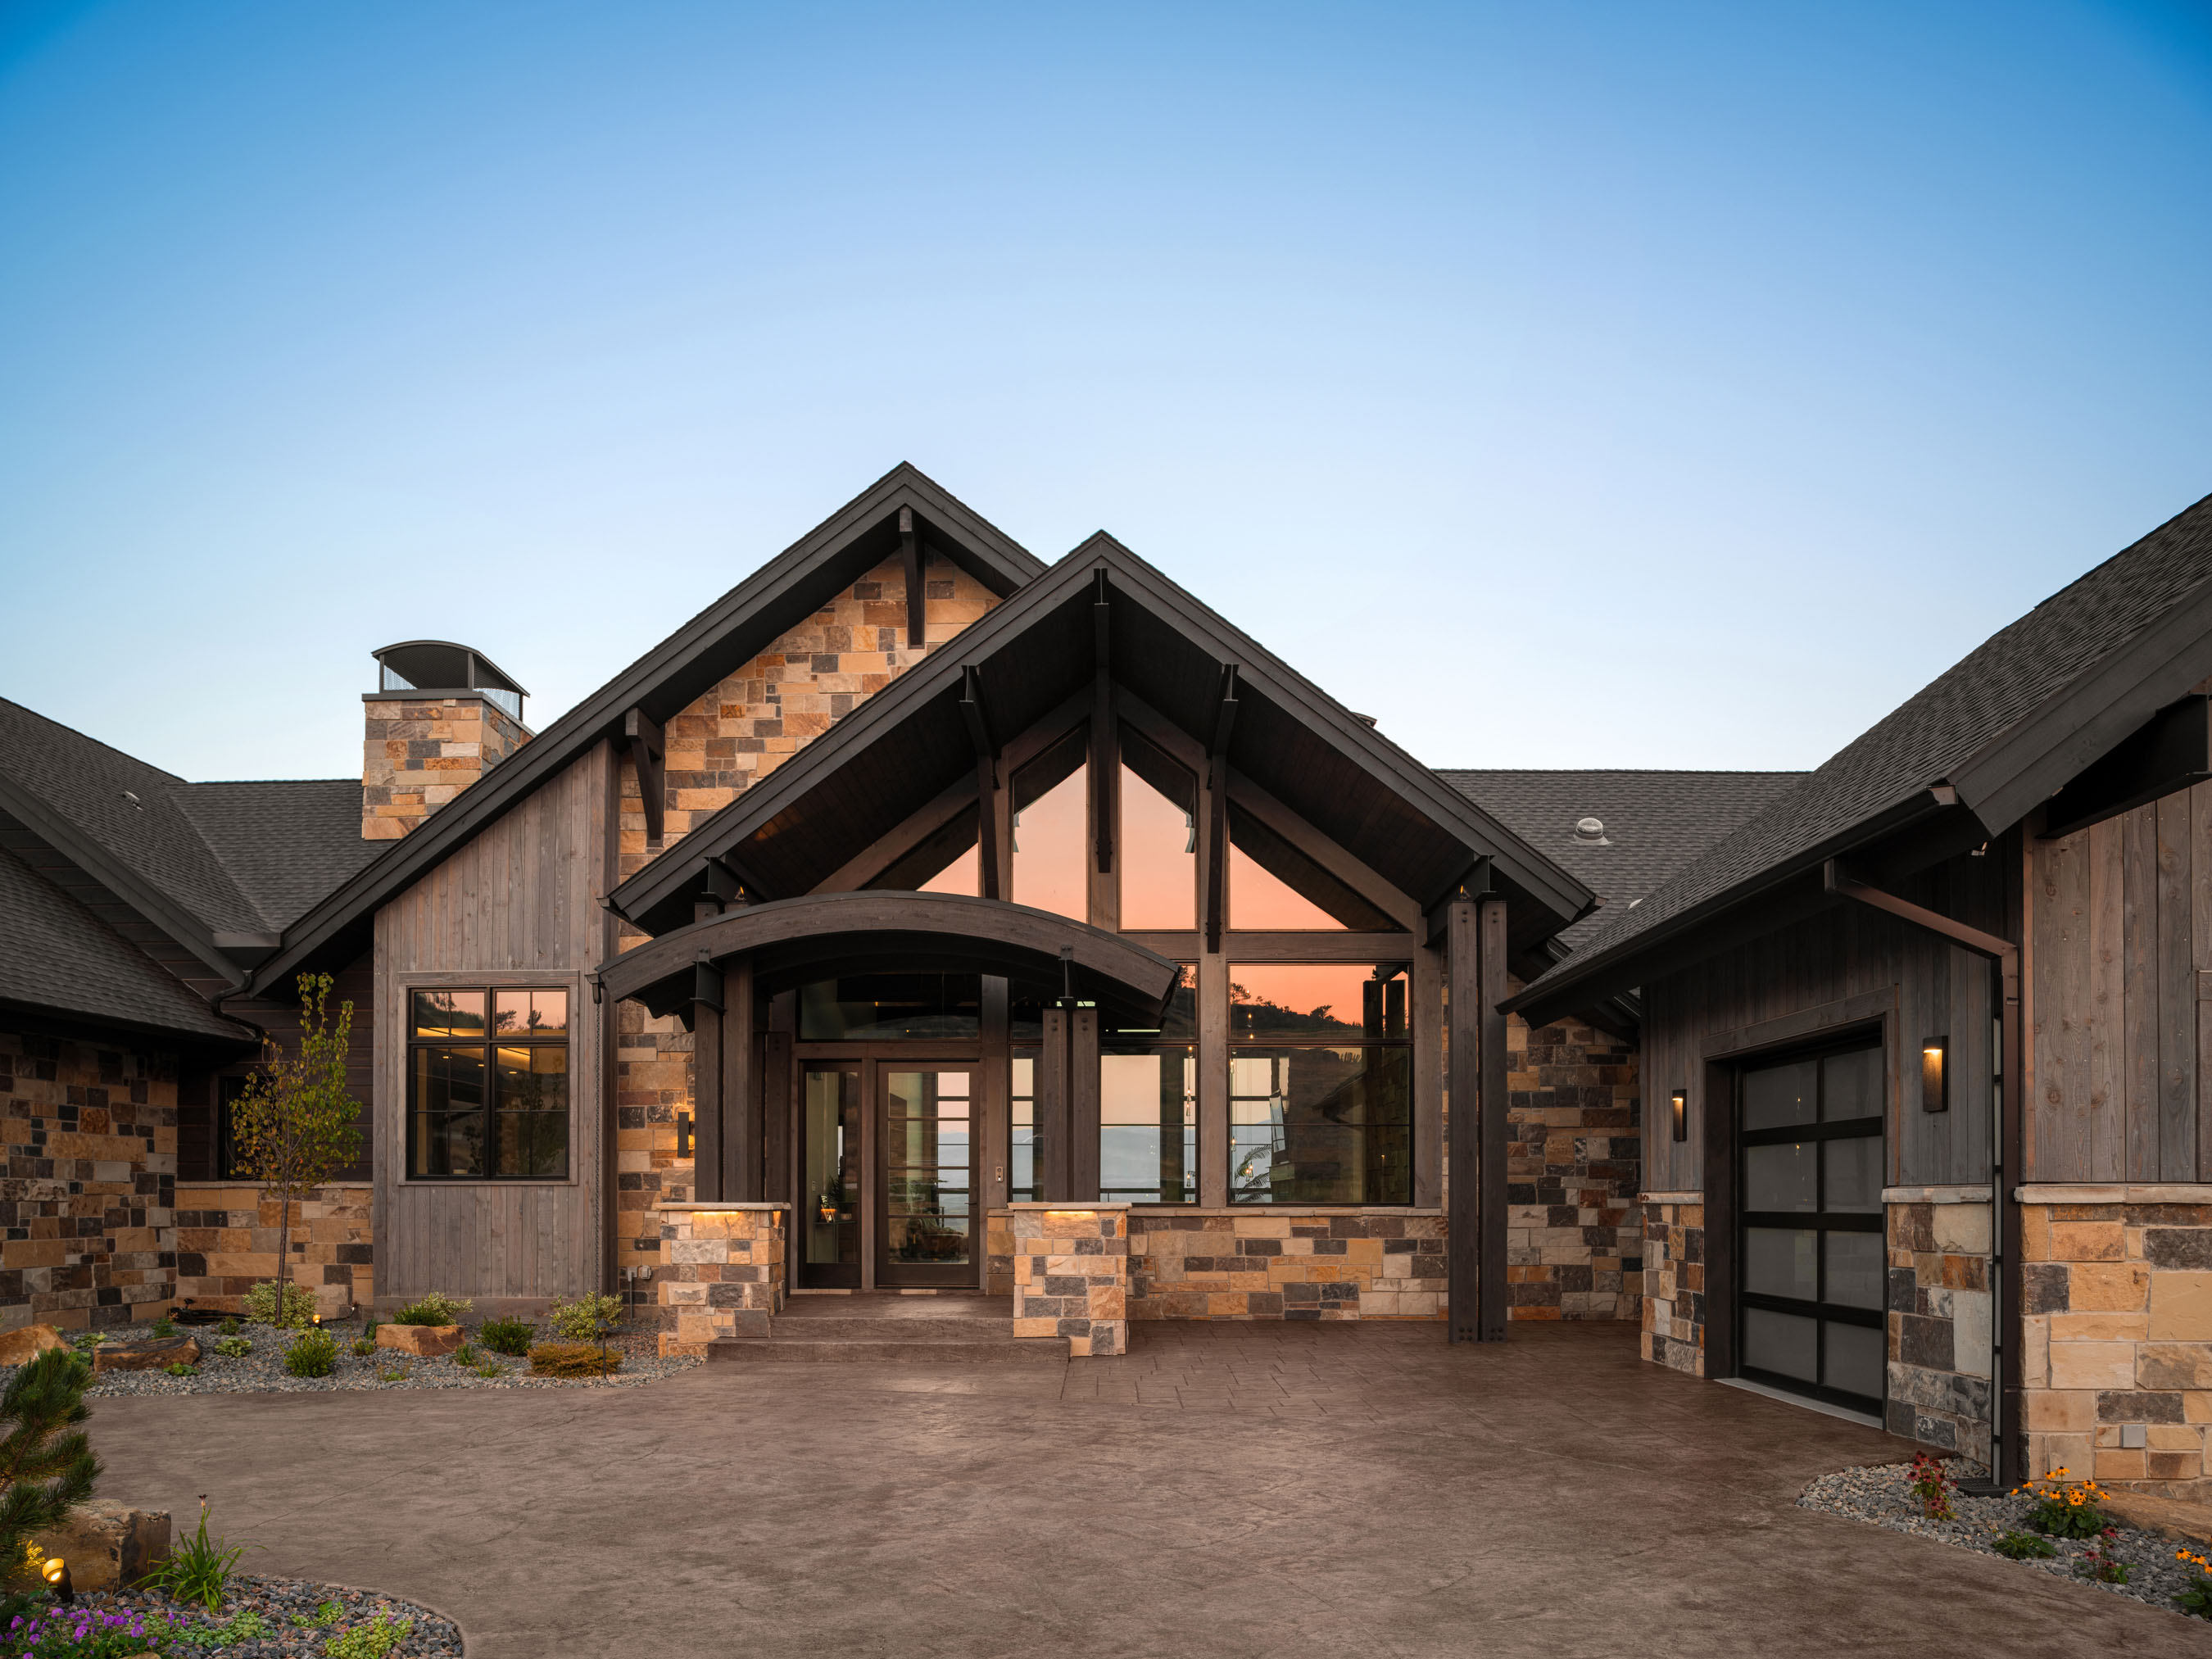 Architecture photography of Loveland, Colorado residence located in Hidden Valley Estates.